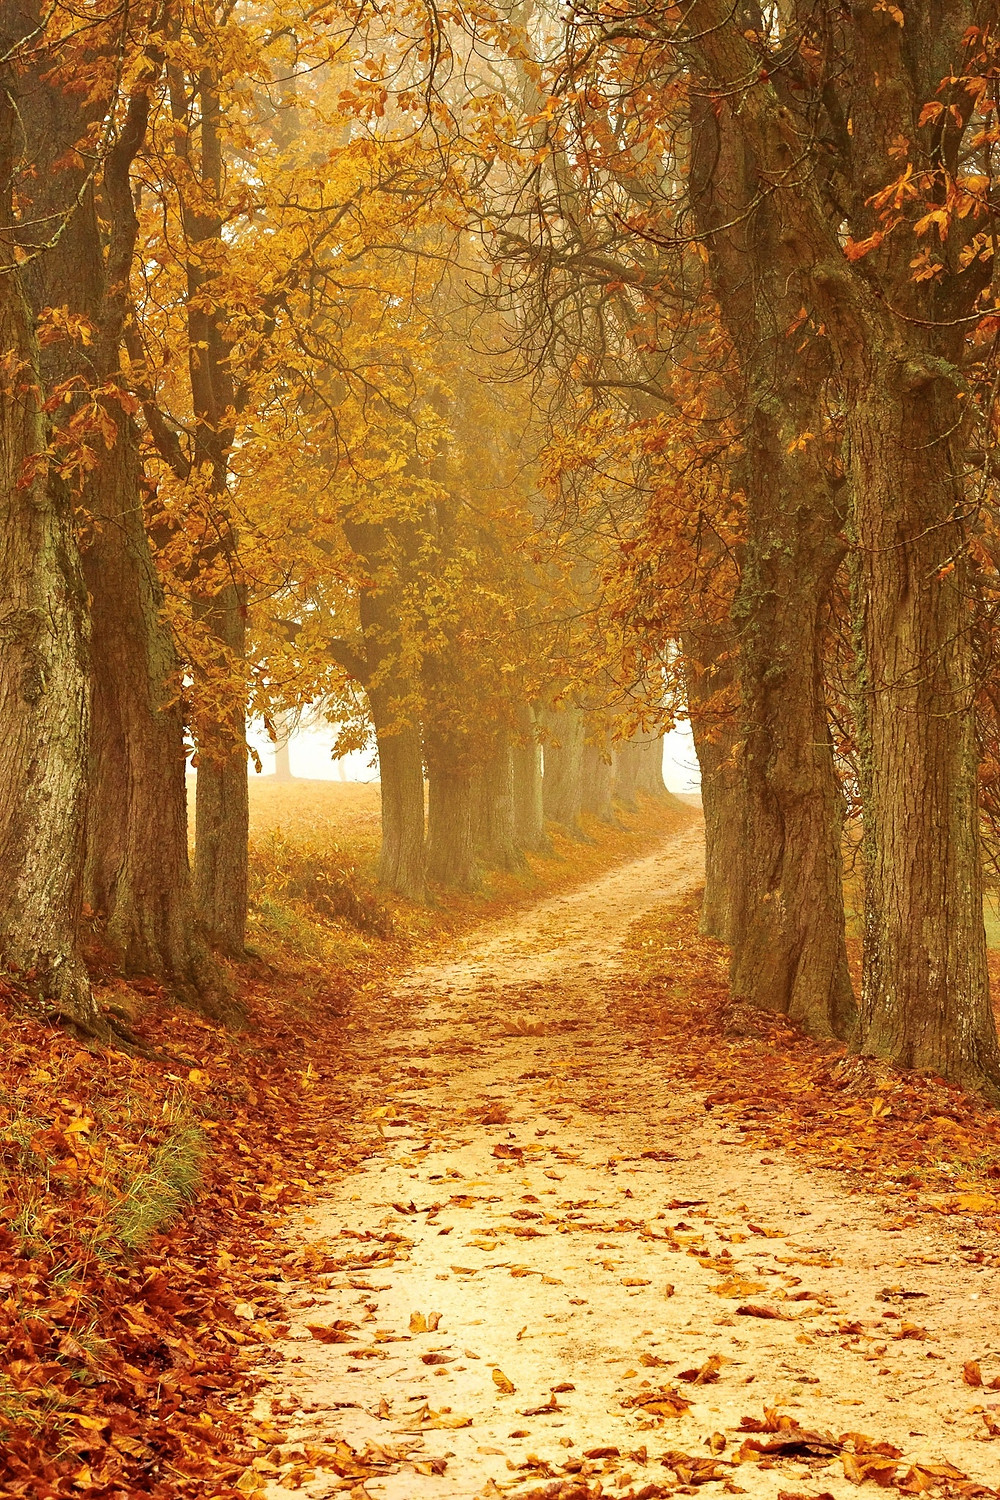 Autumn trees with leaves falling and a fork in the road